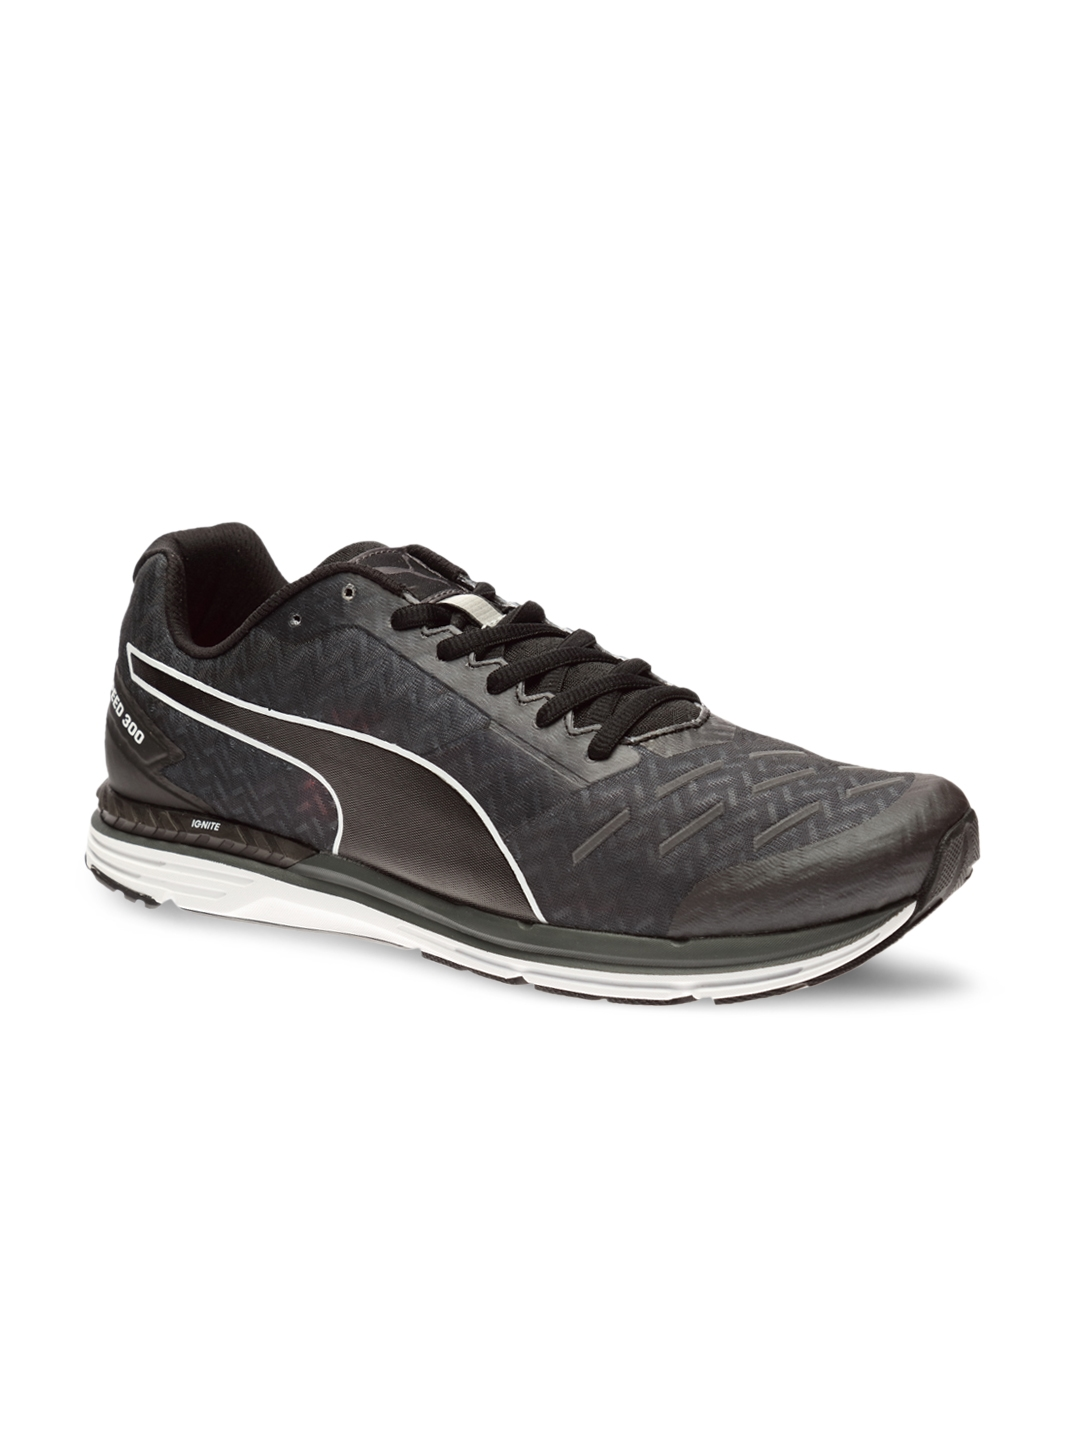 8eafe3ac36d Buy PUMA Men Charcoal Grey Speed 300 IGNITE Running Shoes - Sports ...